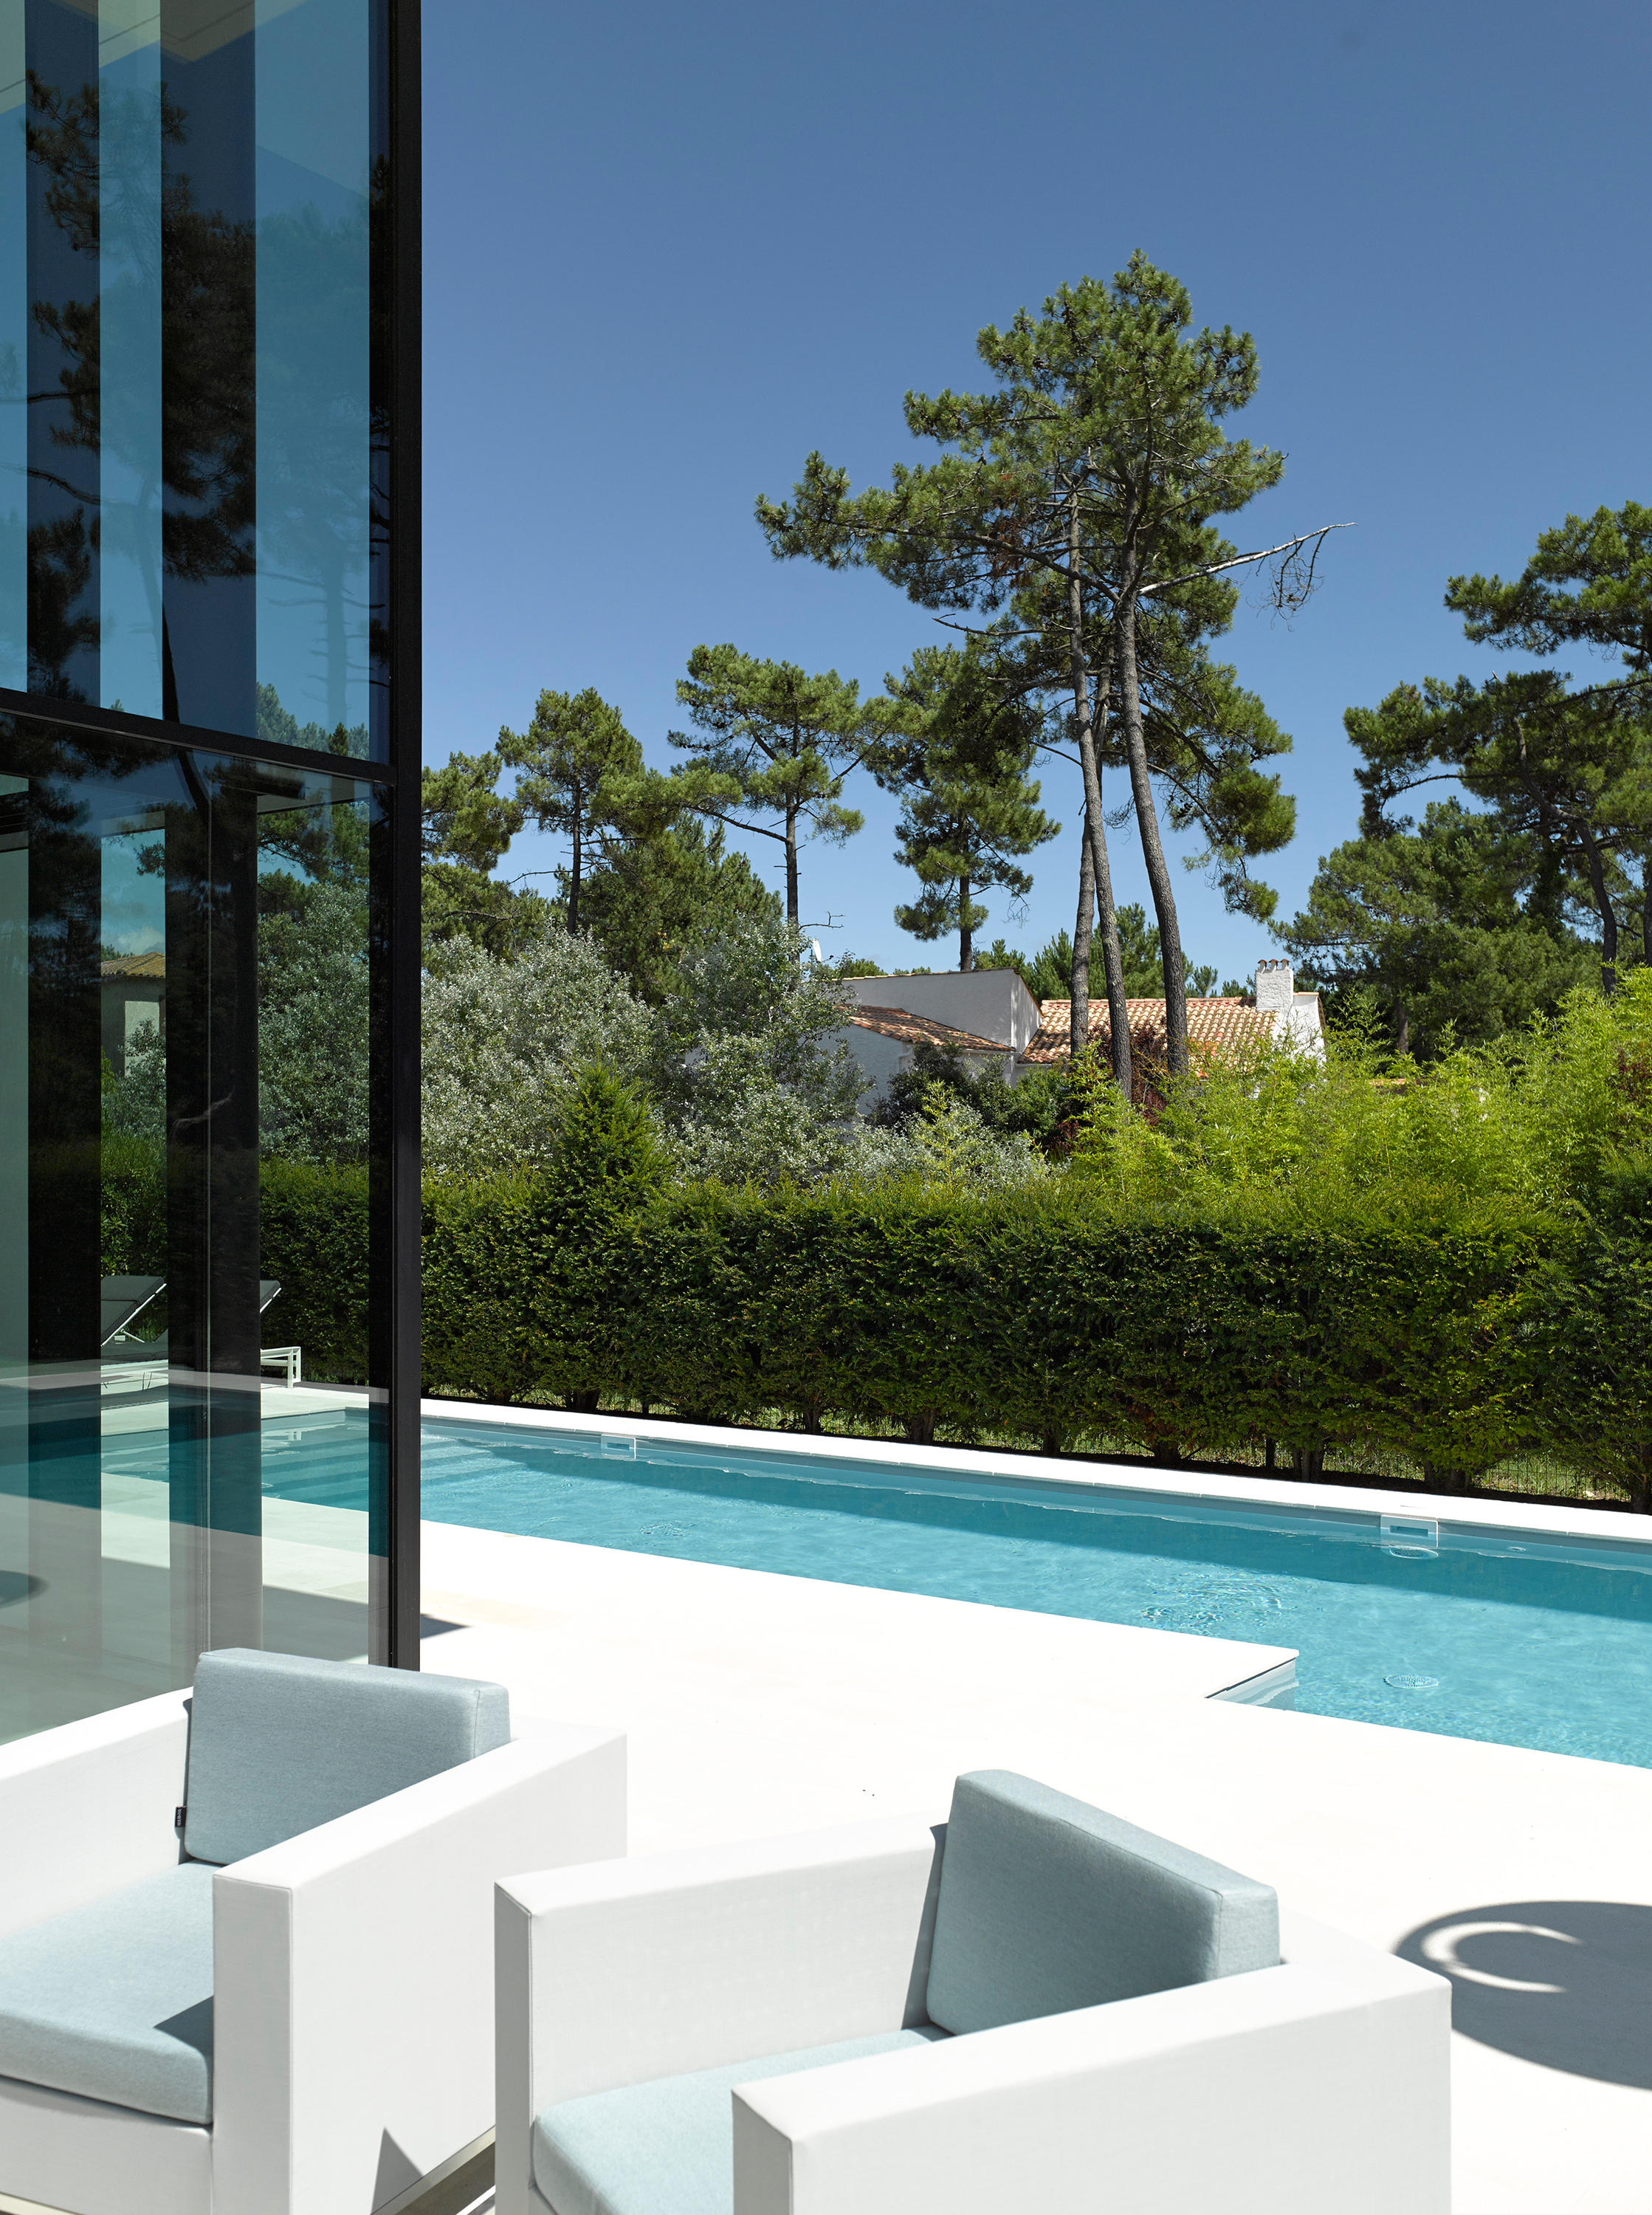 Lap pool swimming pools from piscines carr bleu for Carre bleu